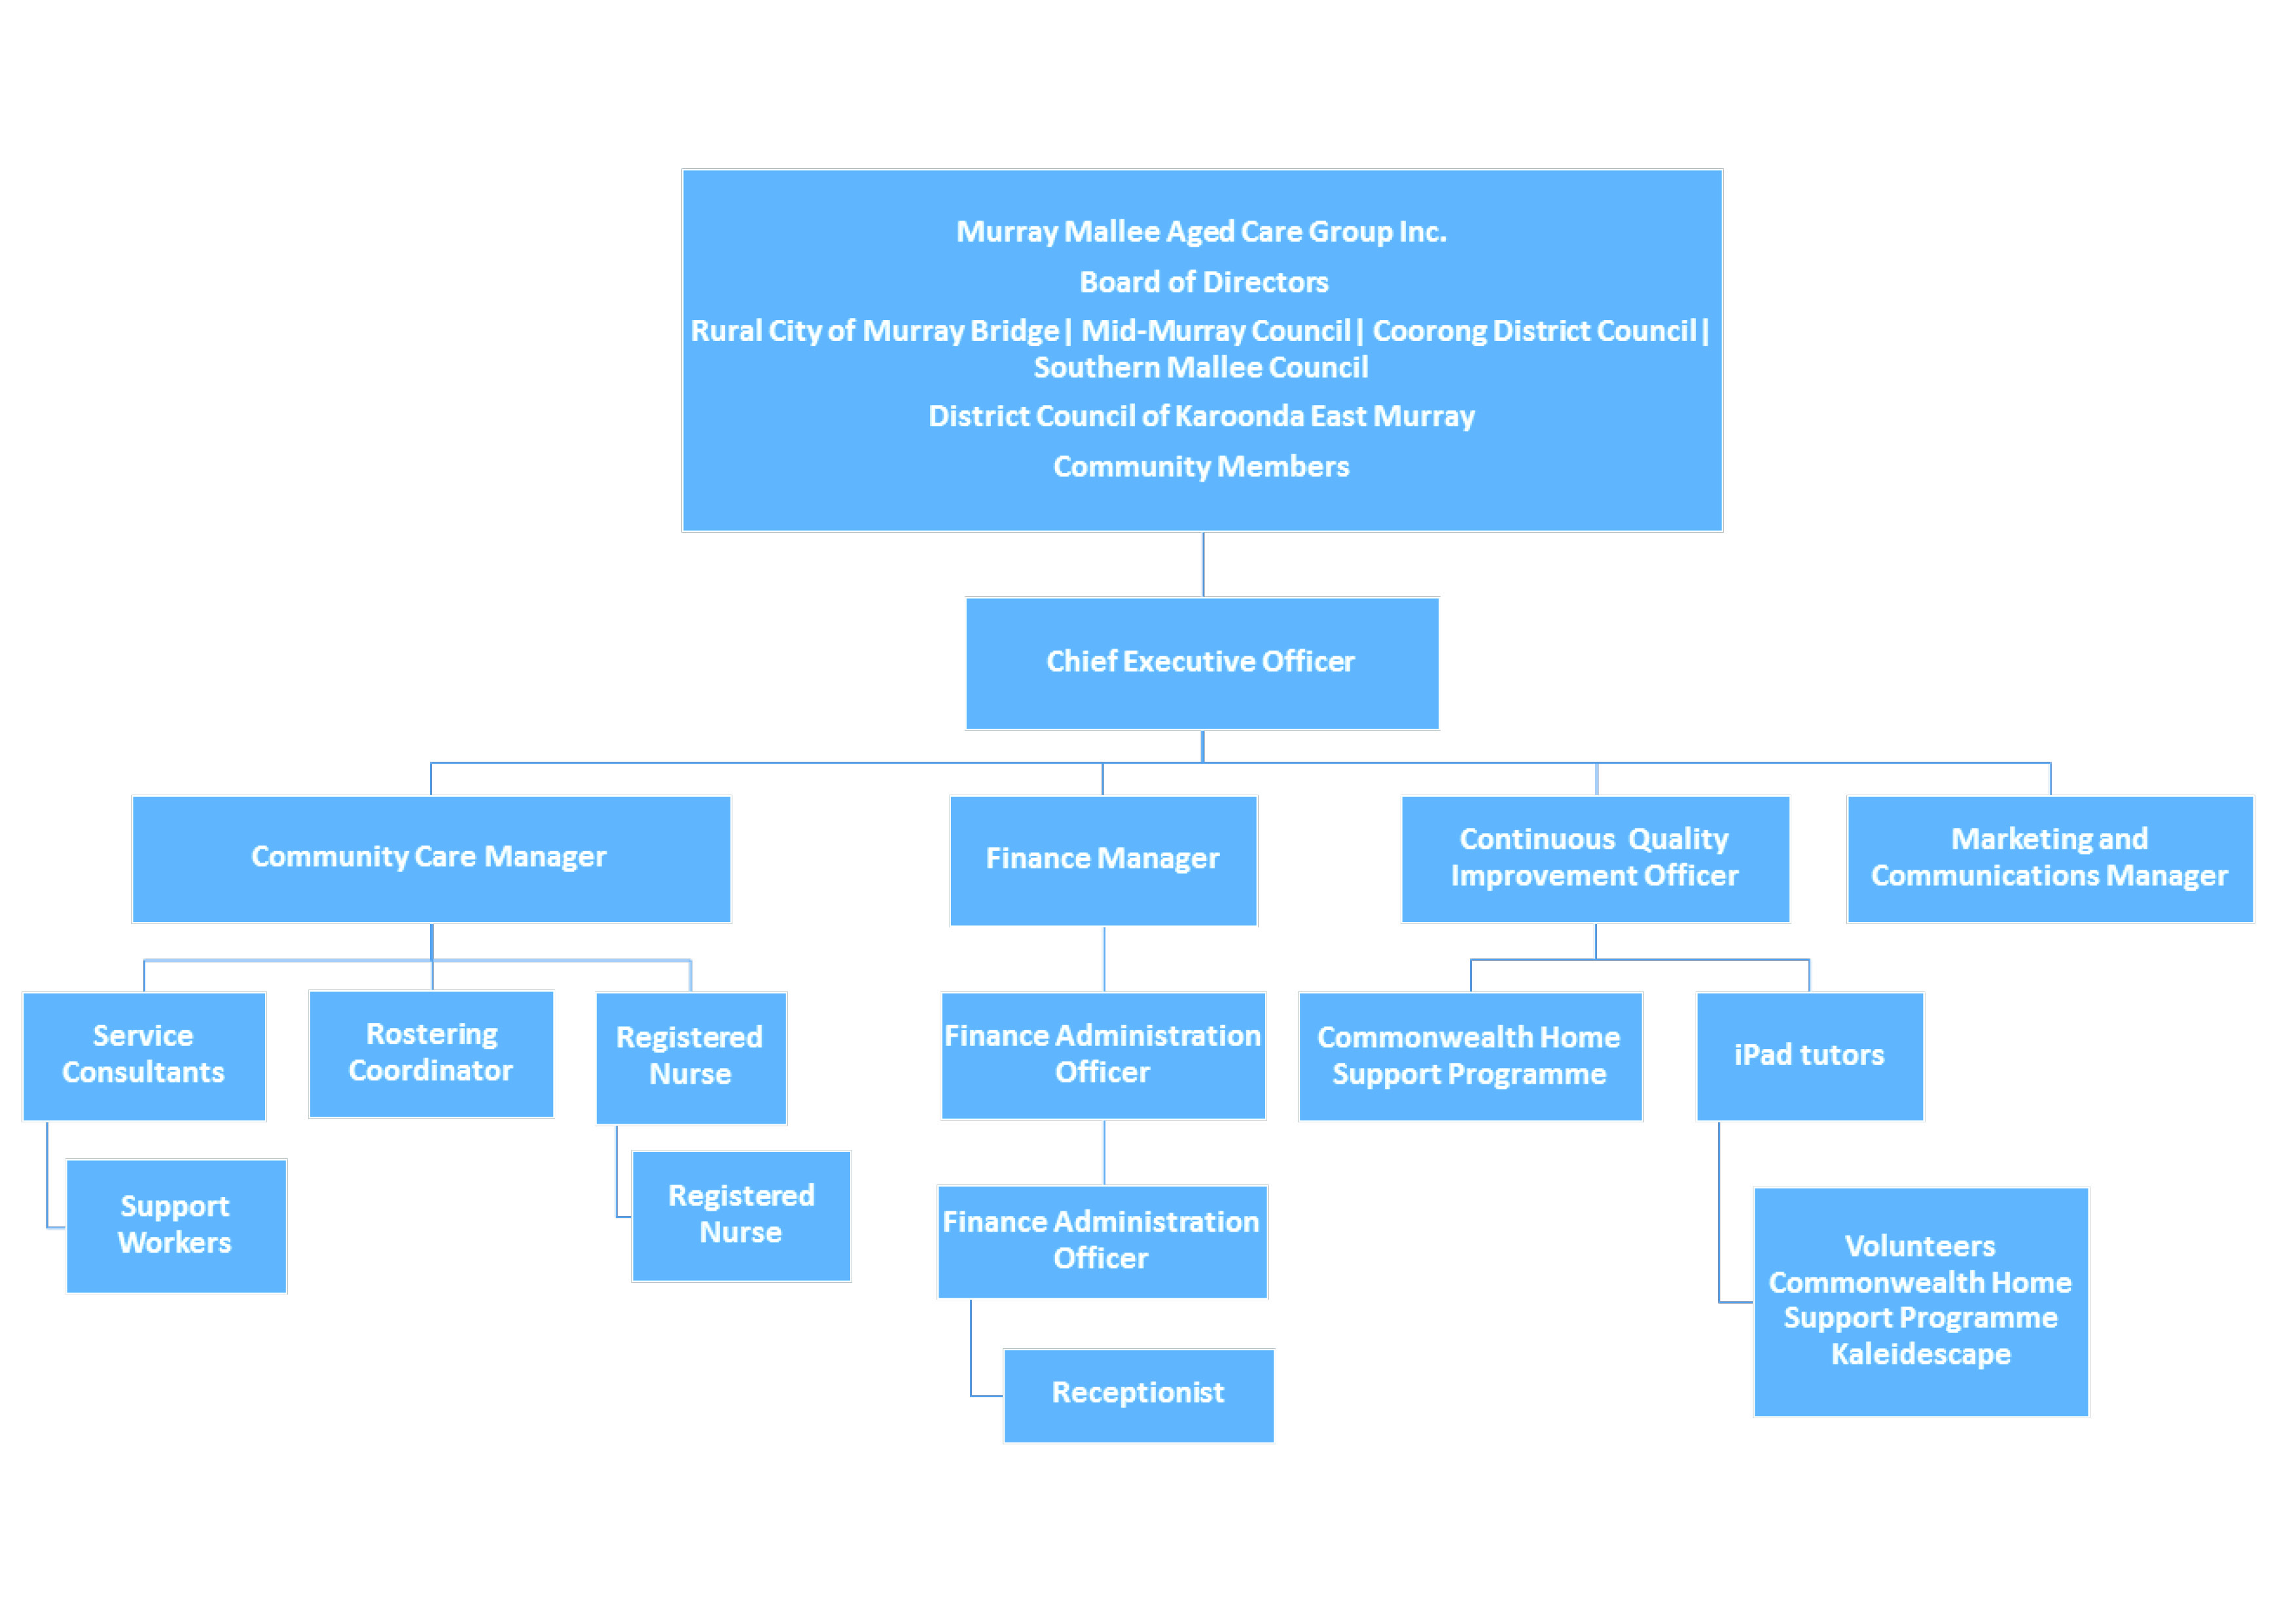 Murray Mallee Aged Care Group Inc. Organisational Structure